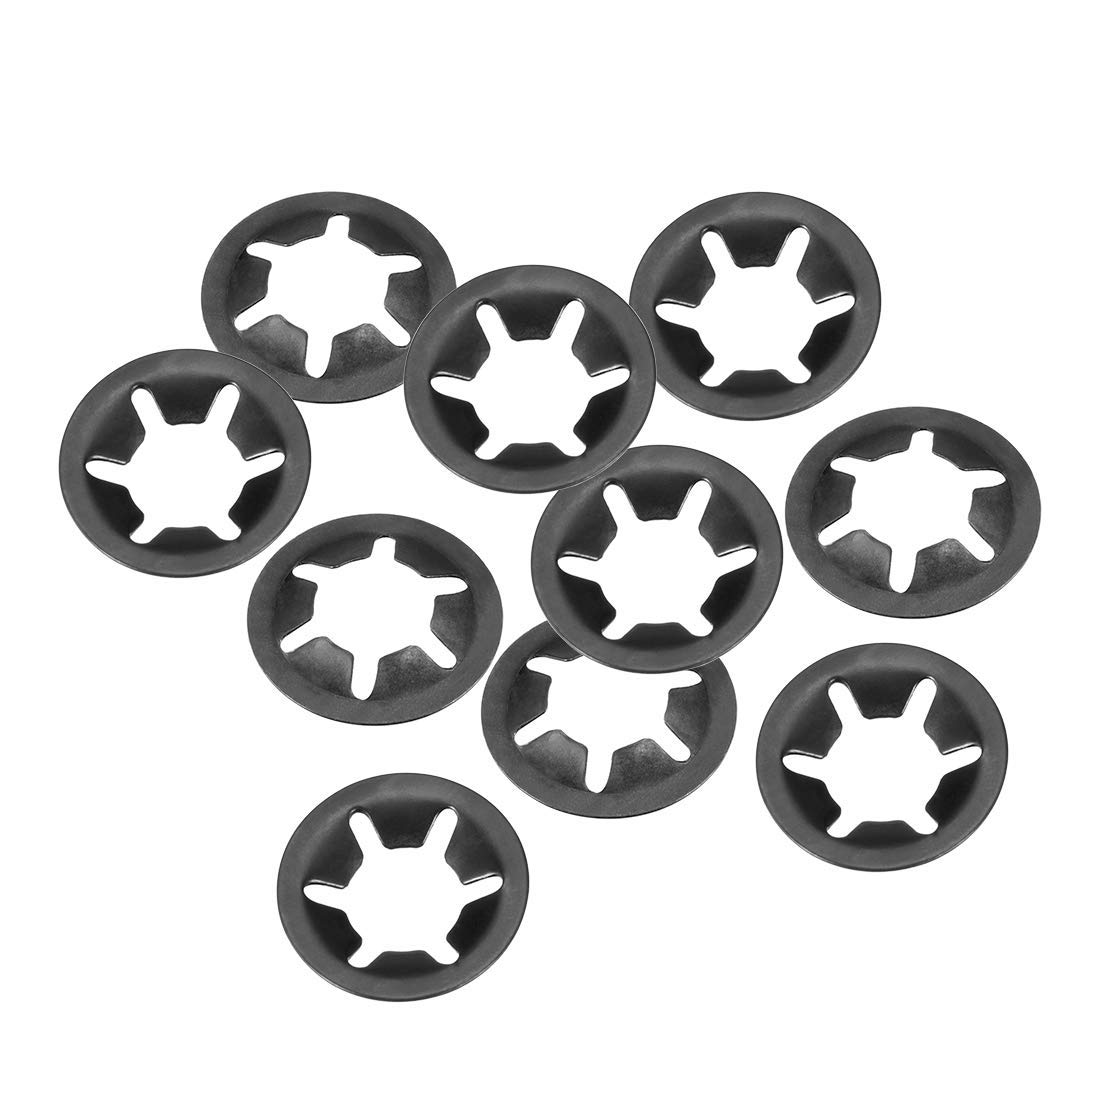 M12 Internal Tooth starlock Washer 10 Pieces 12 mm Internal Diameter 25 mm External Diameter Pressure Washer Lock washers Clip Holder